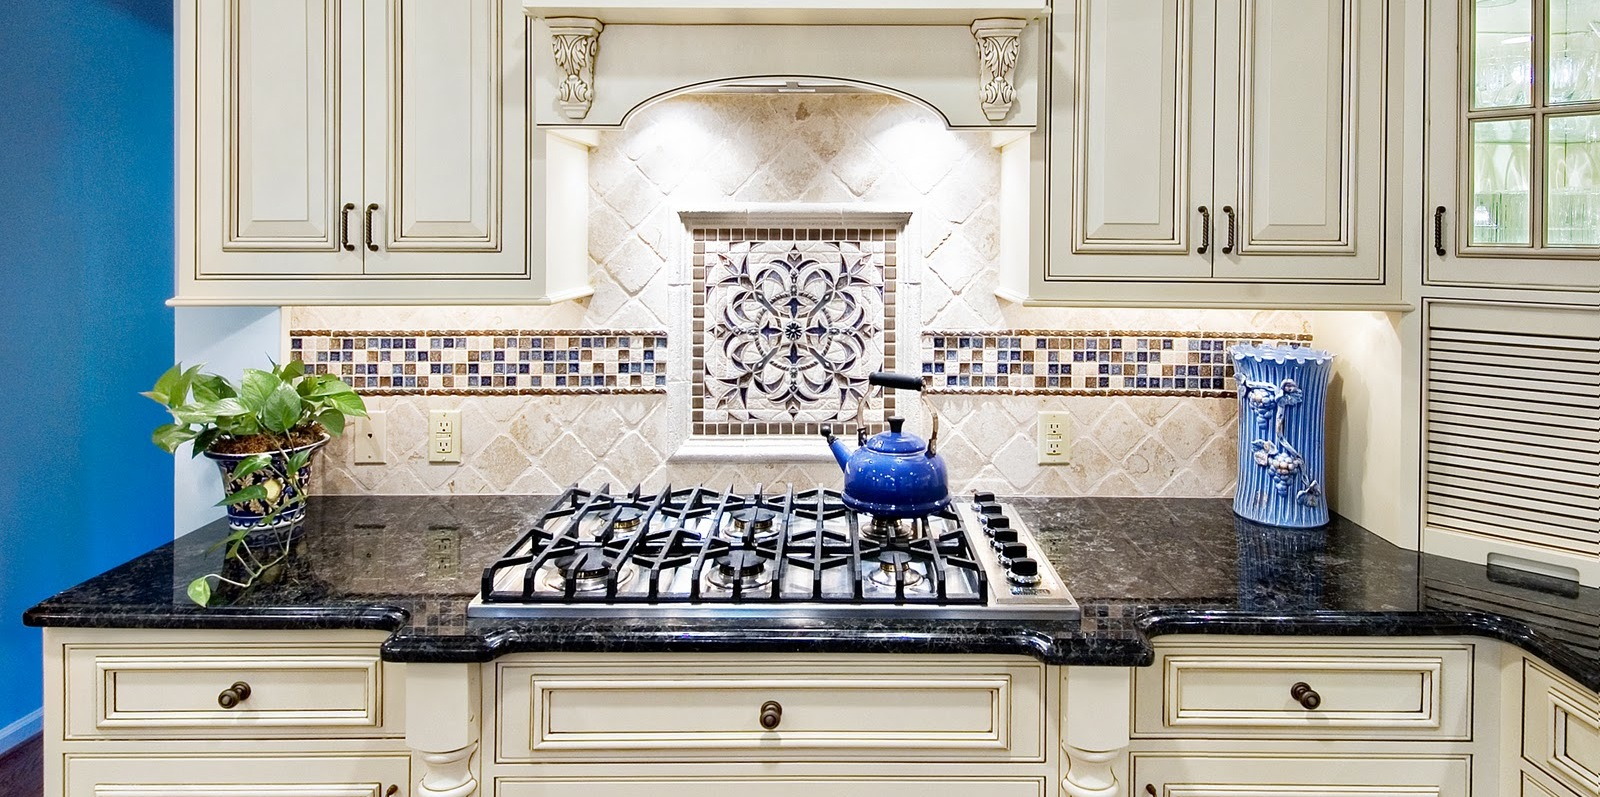 countertopdesigns kitchen countertops Sacramento Kitchen Countertops Sacramento Granite Countertops Countertopdesigns net